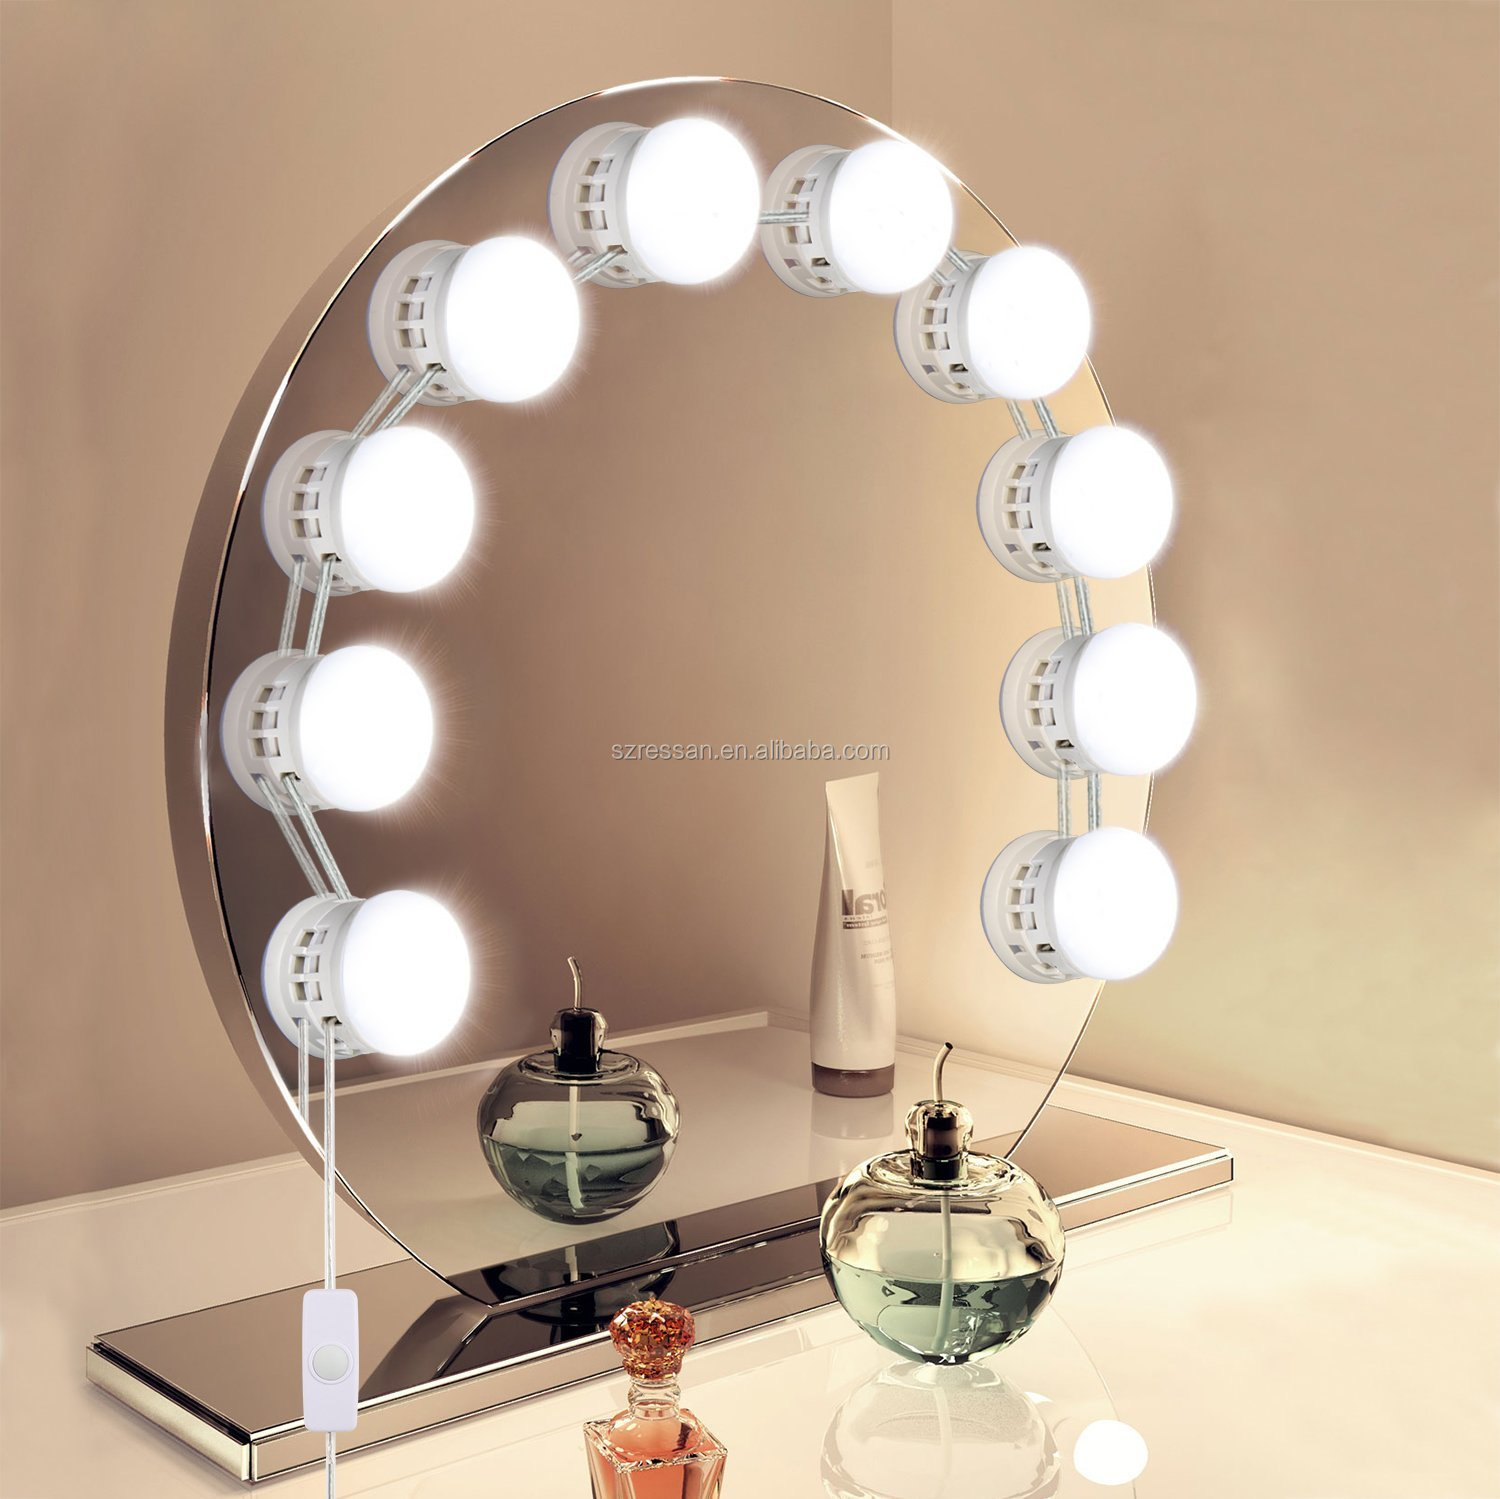 Hollywood Style Led Vanity Mirror Light Kit For Makeup Dressing Table Vanity Set